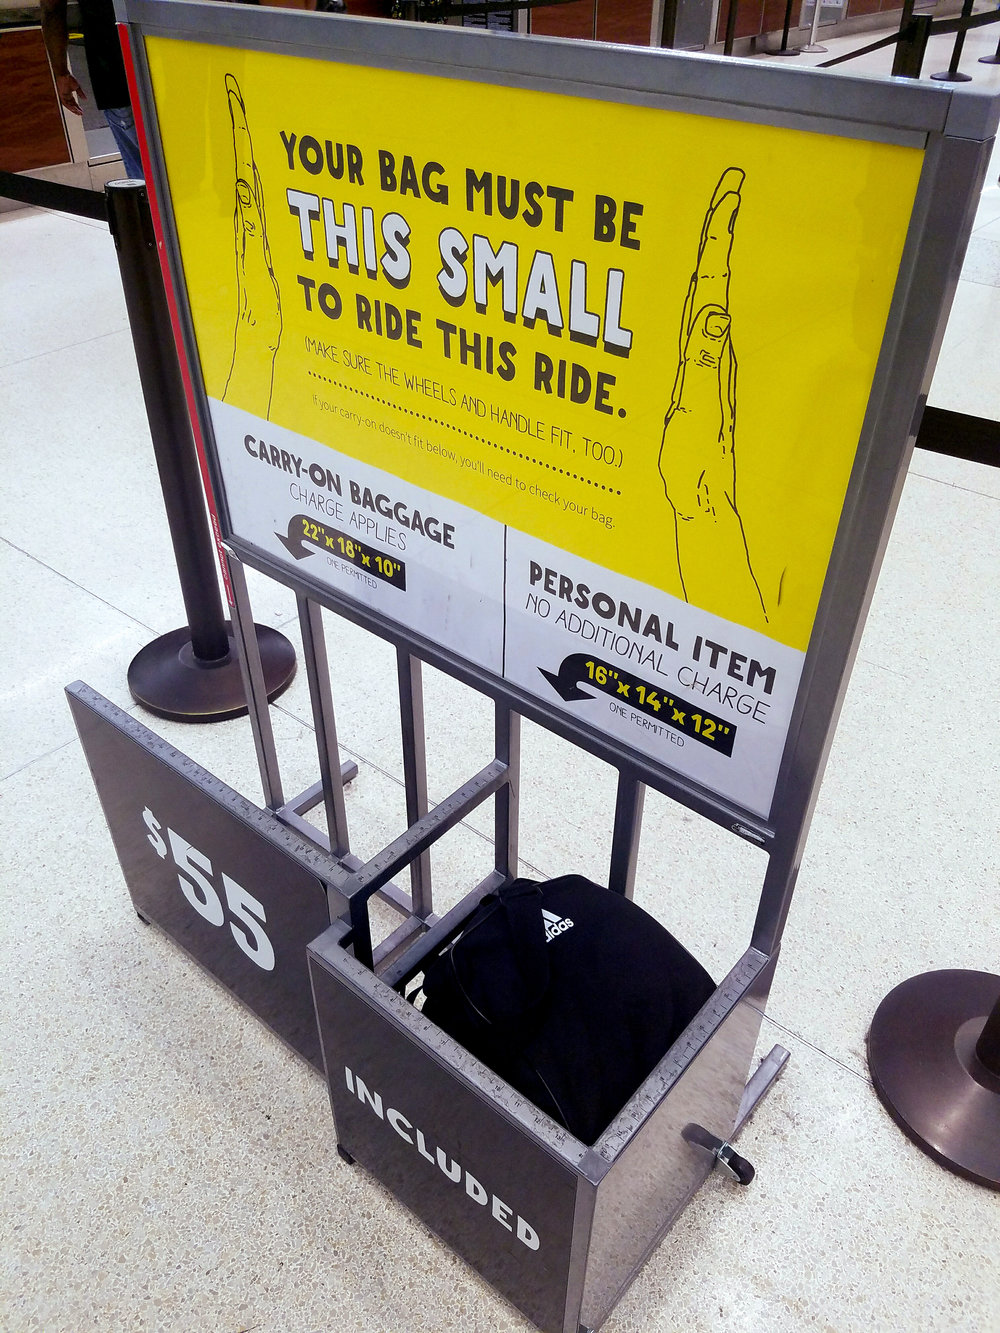 bag-sizer-spirit-airlines